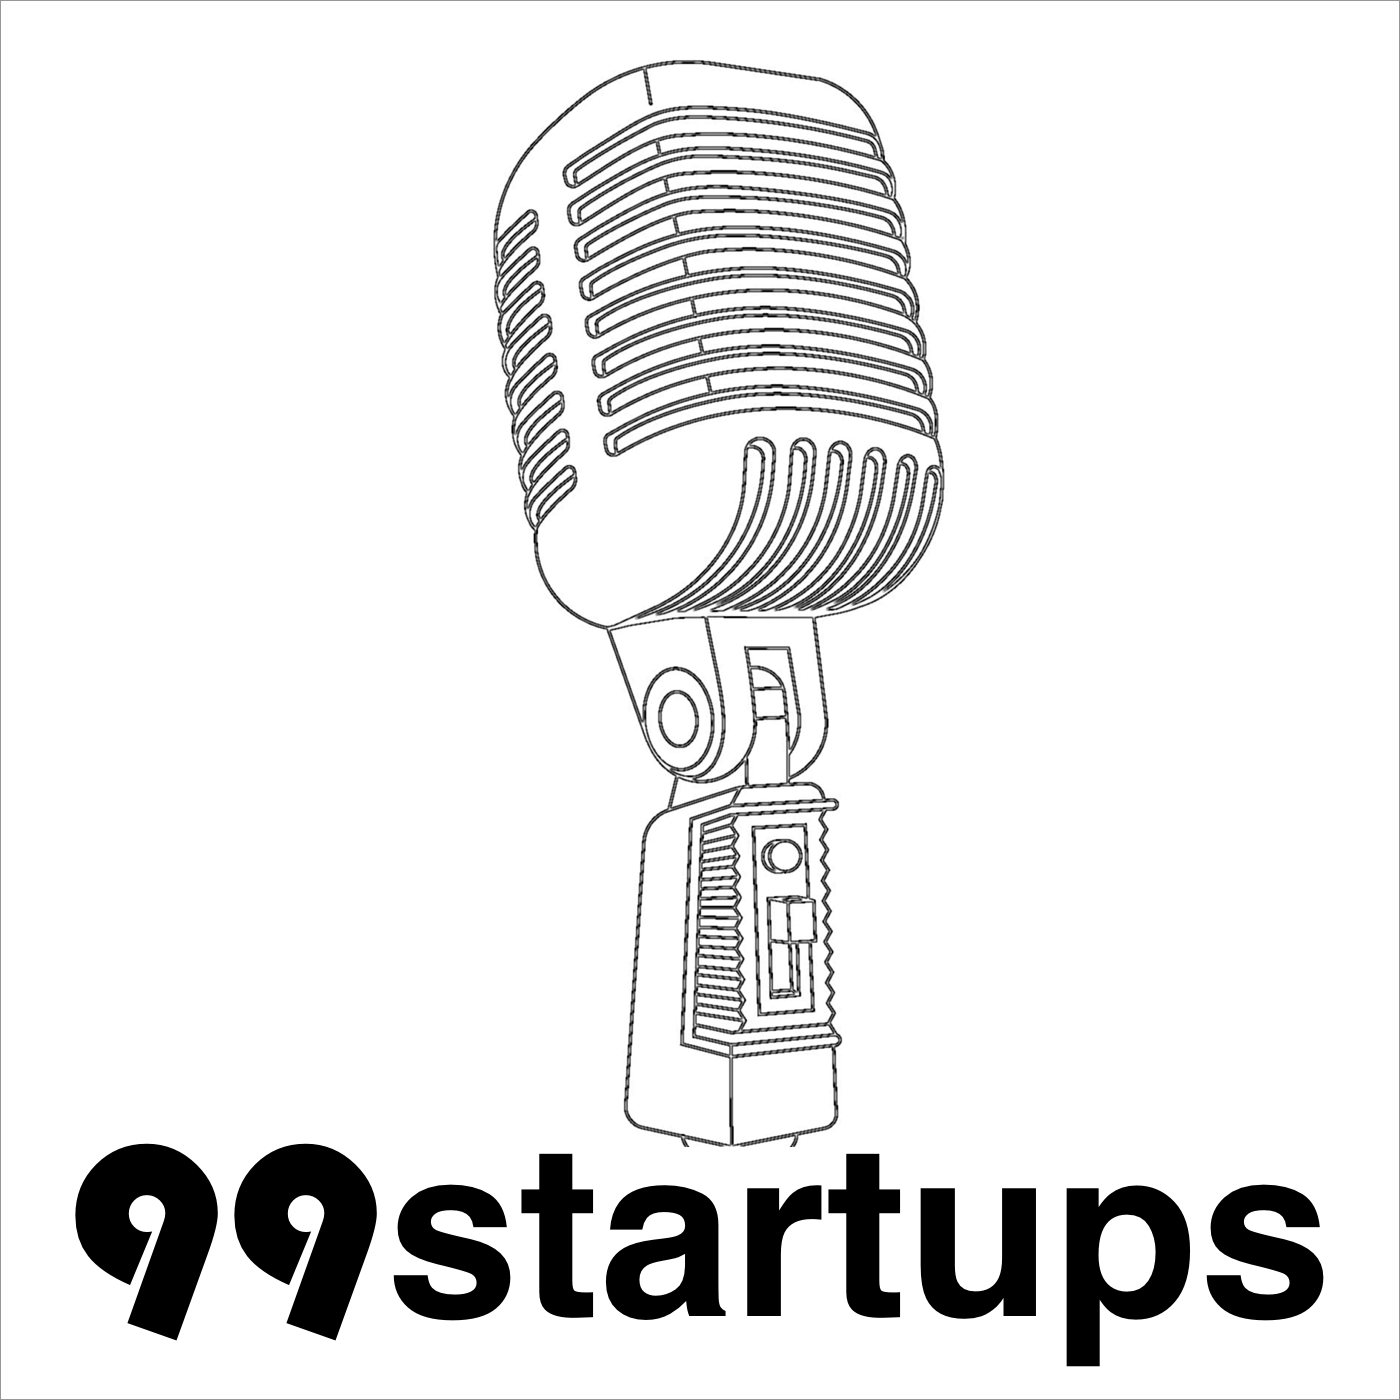 99startups - provide important insights